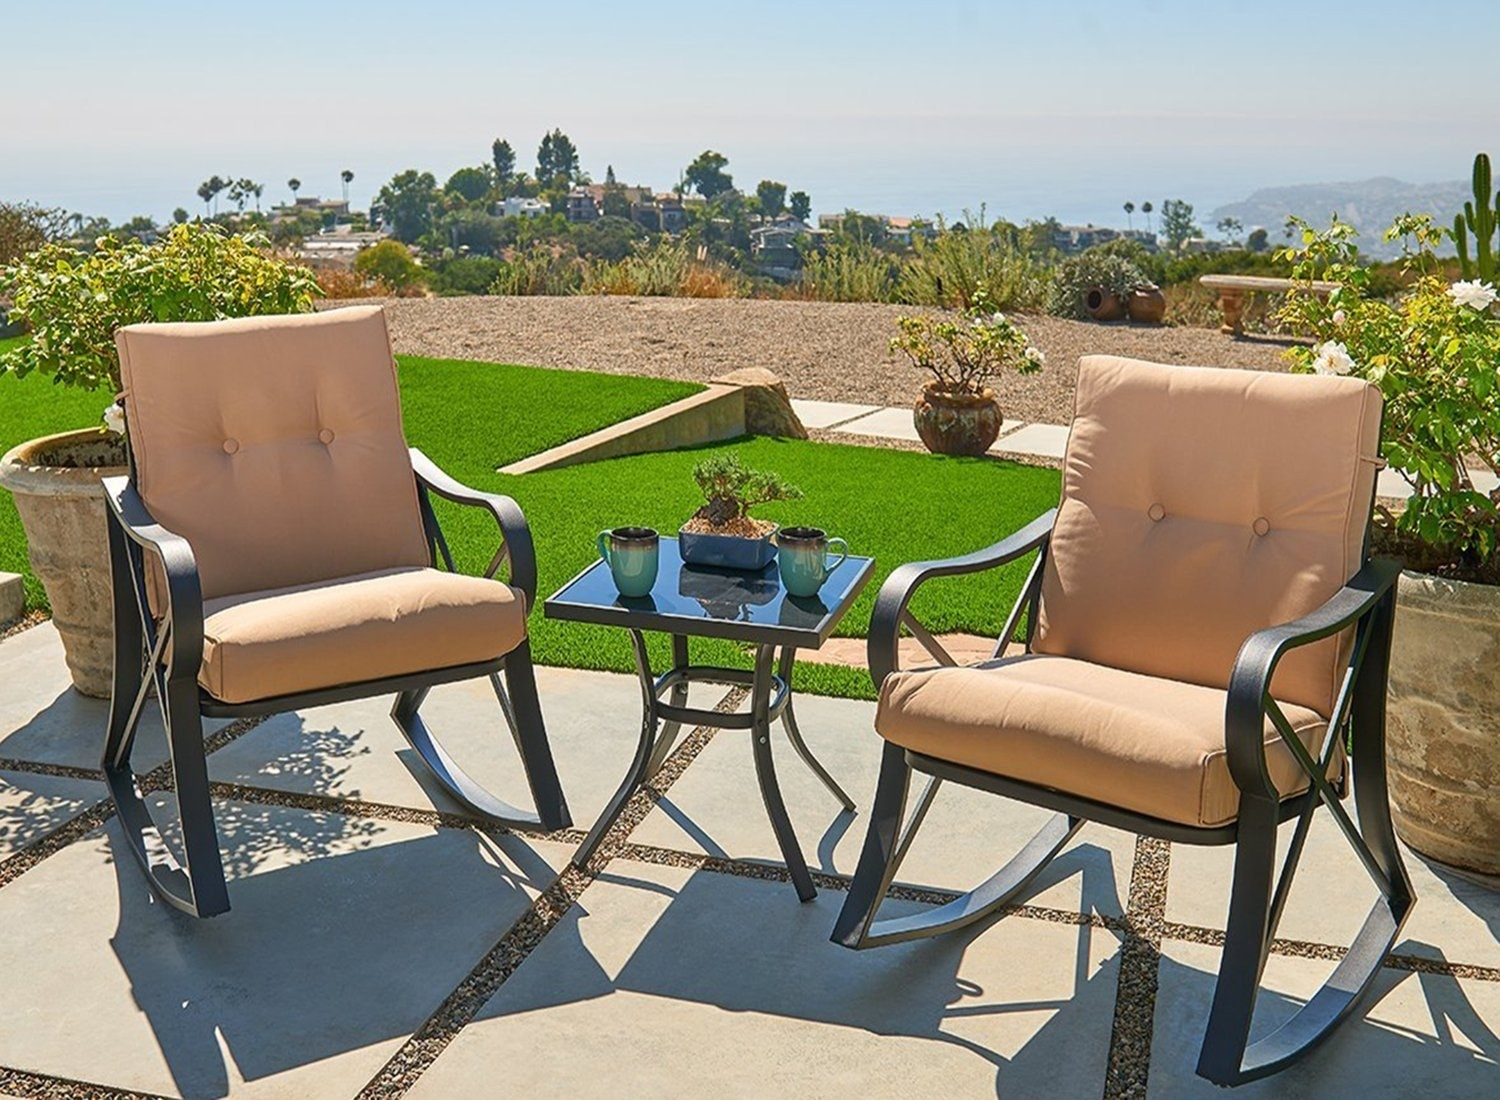 25 of the best places to buy outdoor furniture rh buzzfeed com Top Rated Outdoor Furniture Brands where to buy outdoor patio furniture